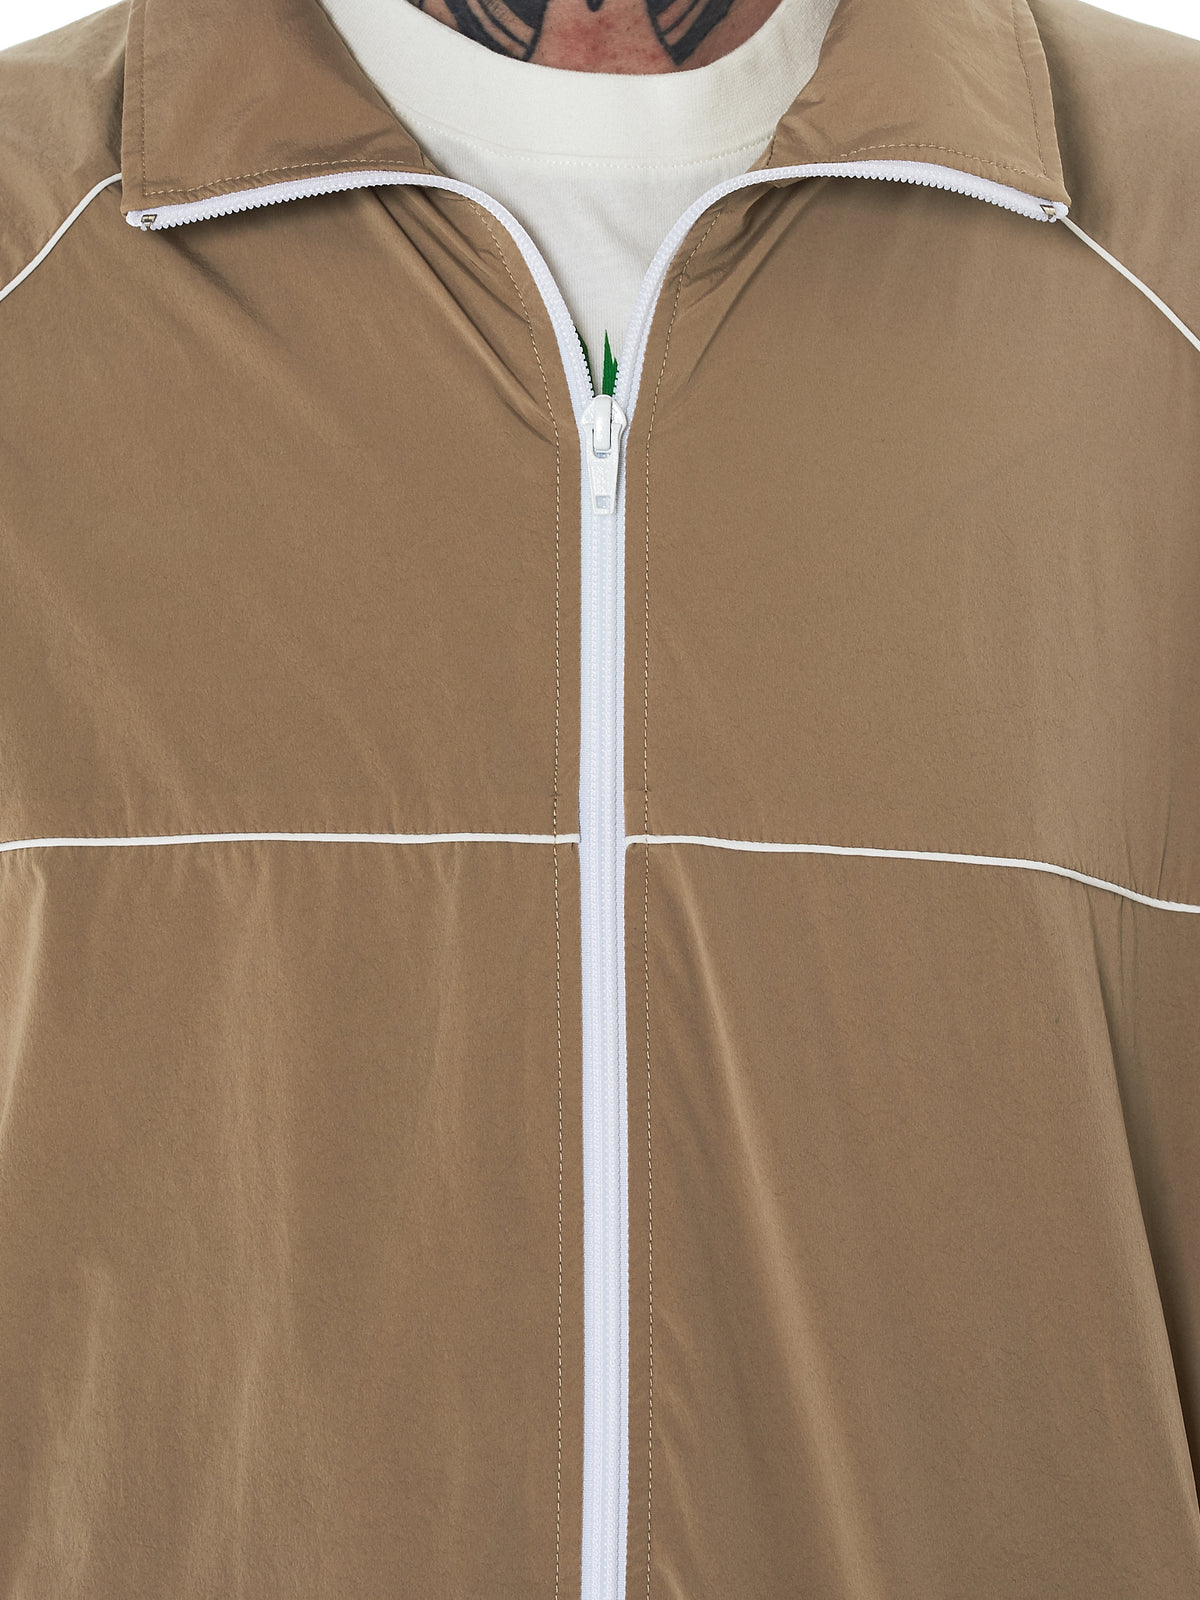 Y/Project Jacket - Hlorenzo Detail 2